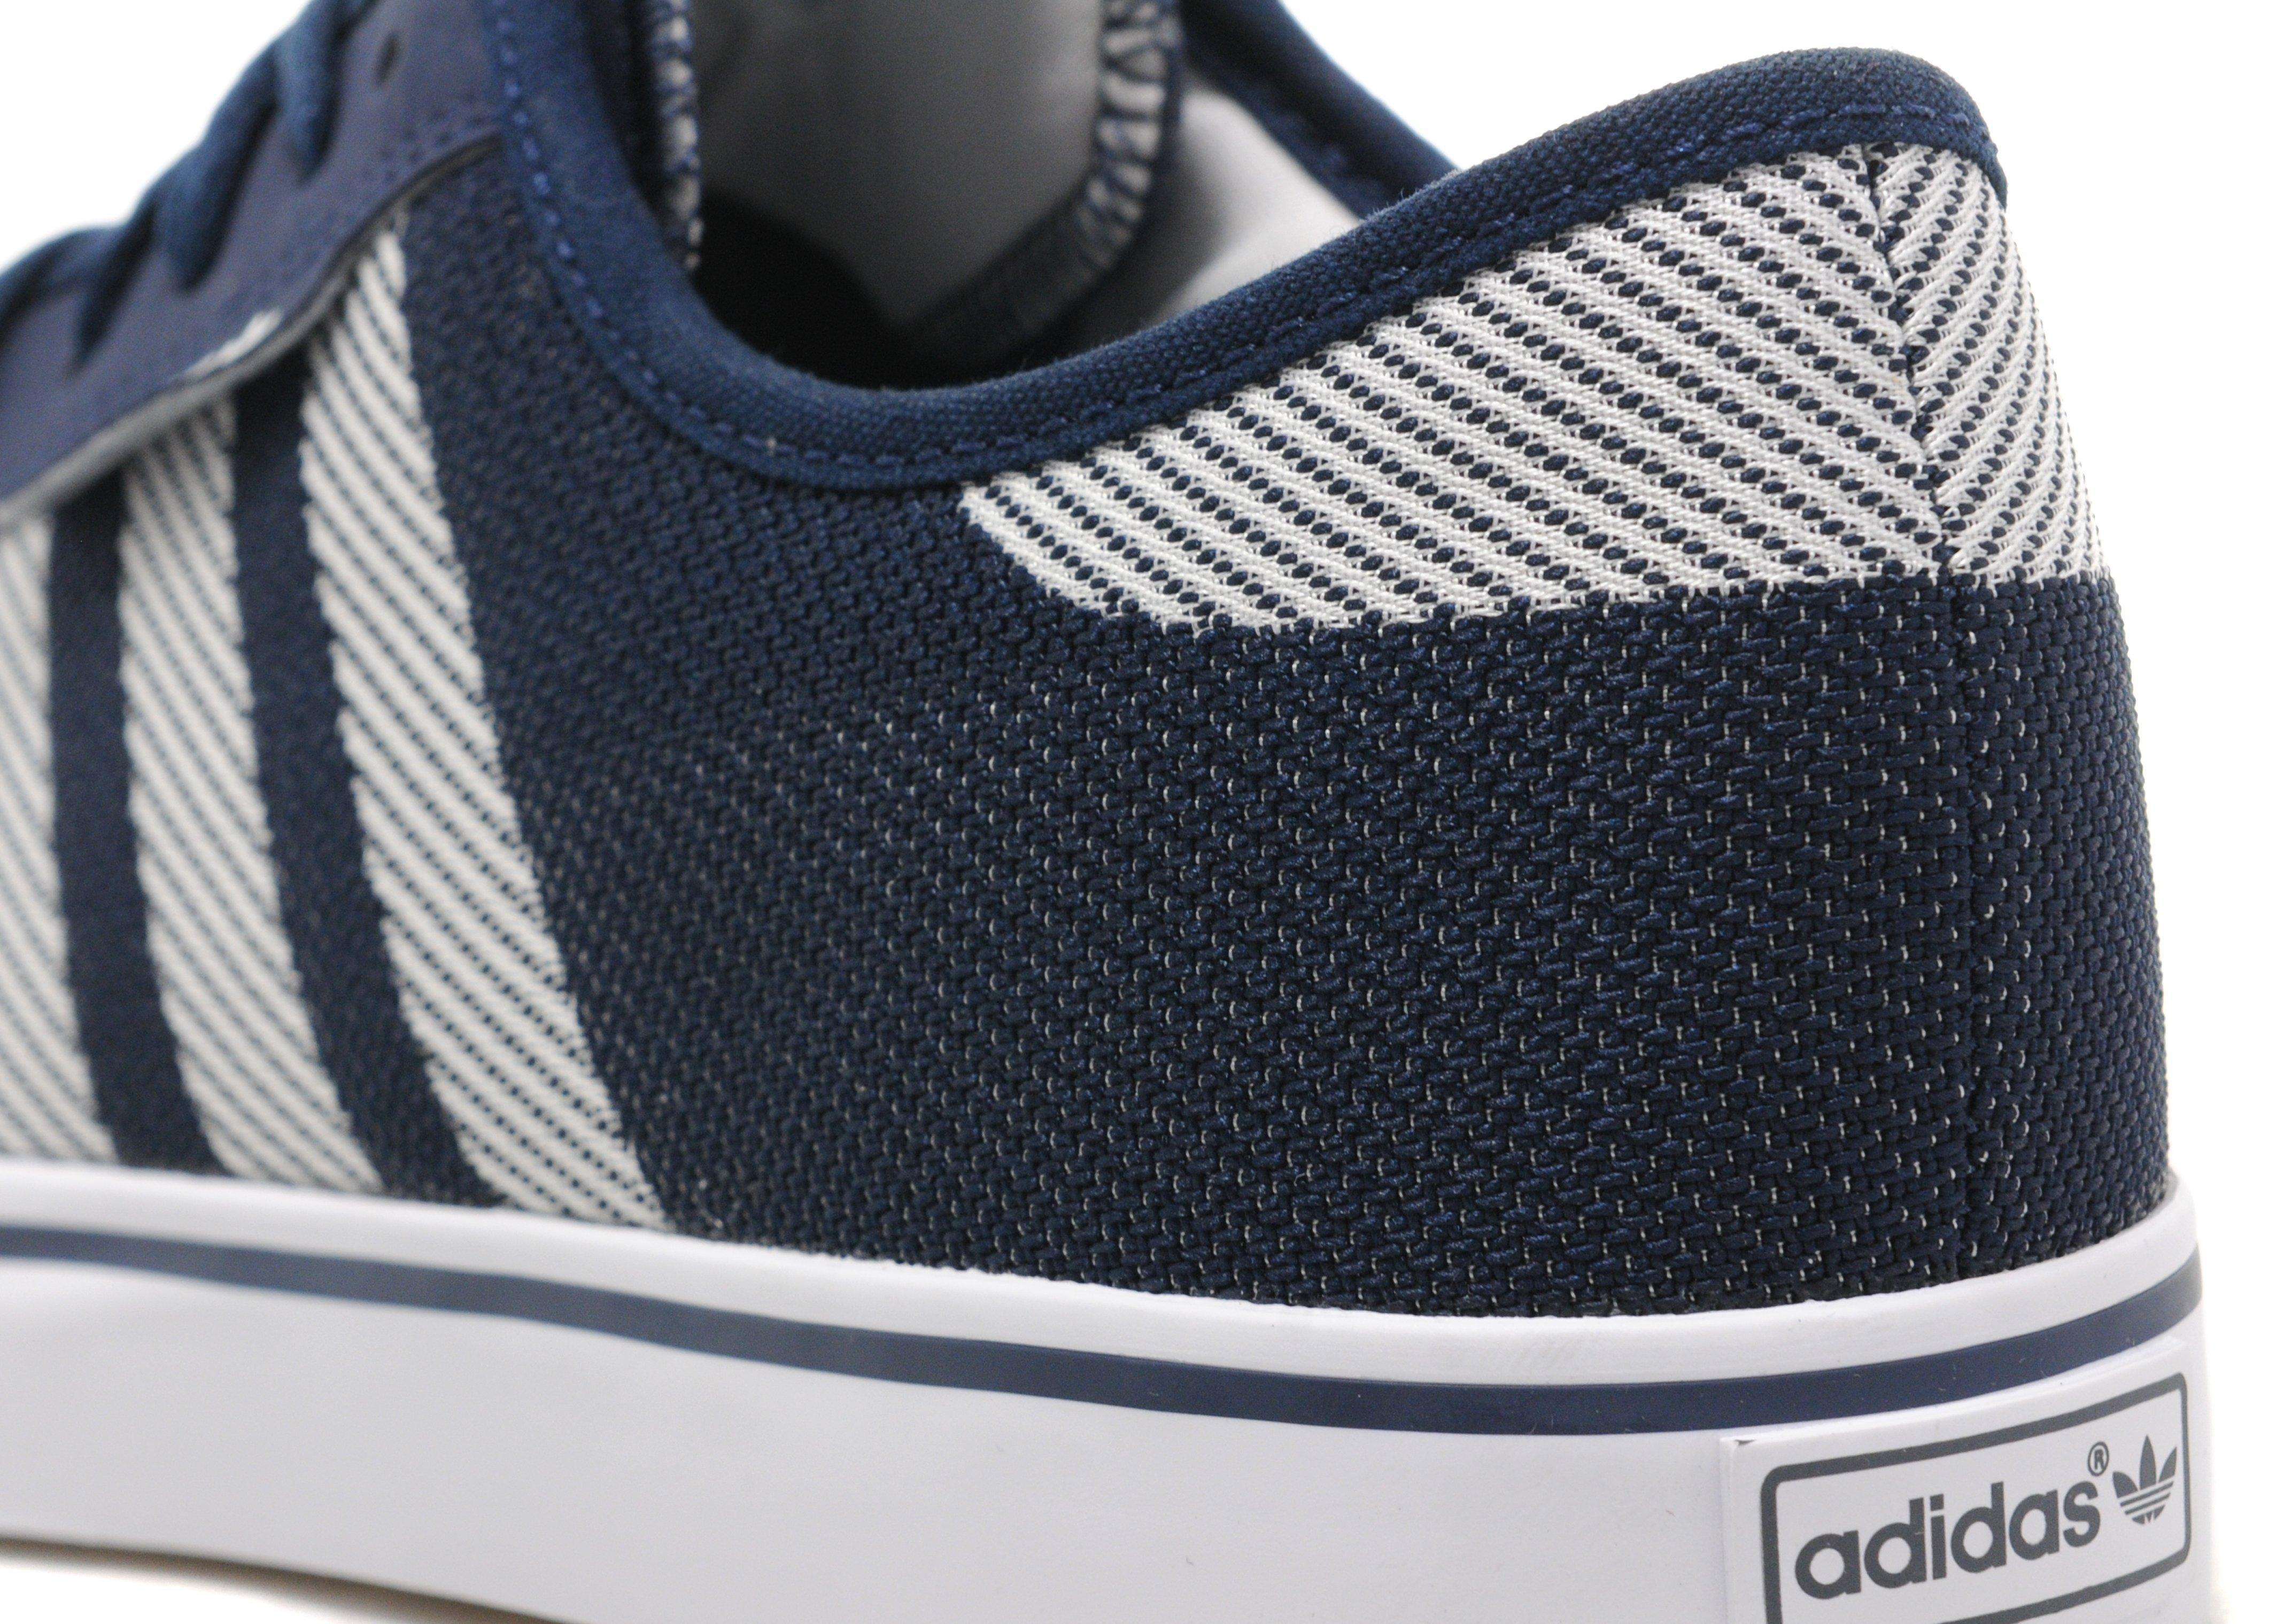 adidas Originals Leather Seely Weave in Navy/White (Blue) for Men